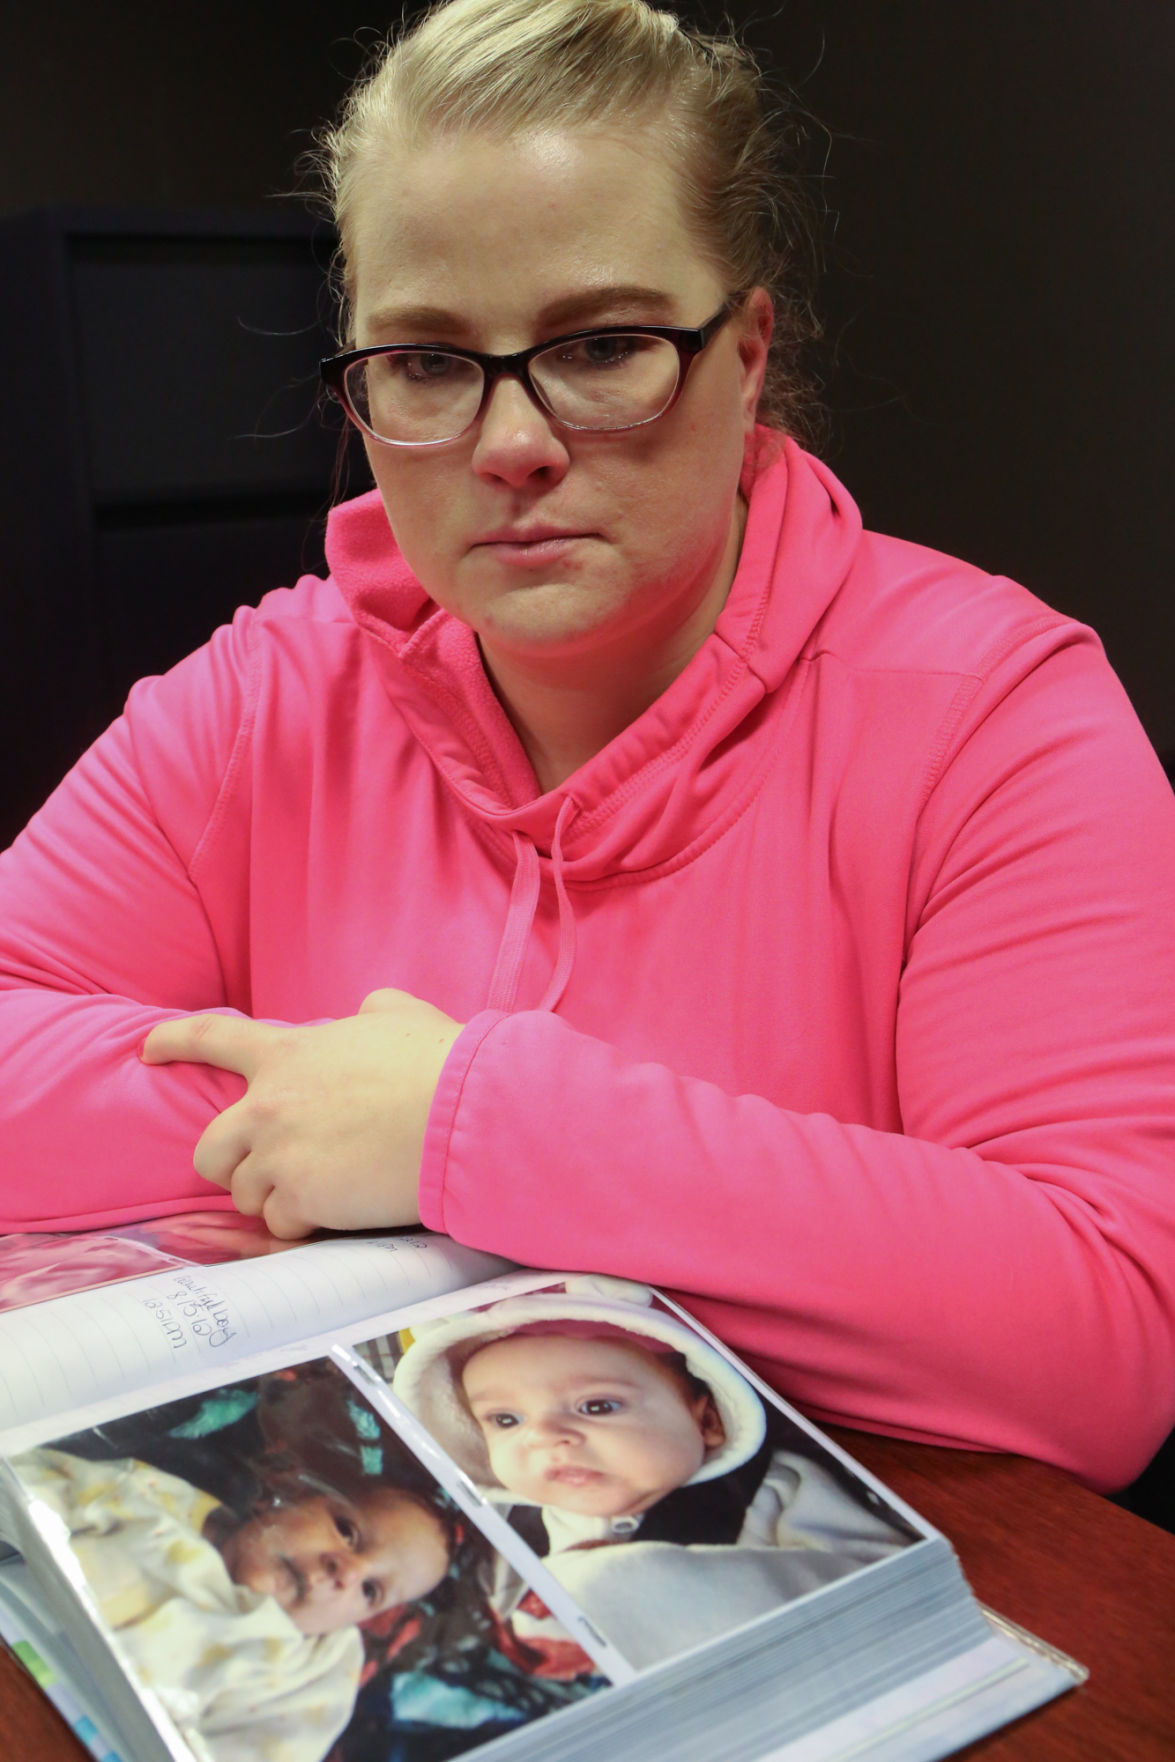 Tabitha Castaneda lost her 3-month-old son, Cesar Jr., in 2012.